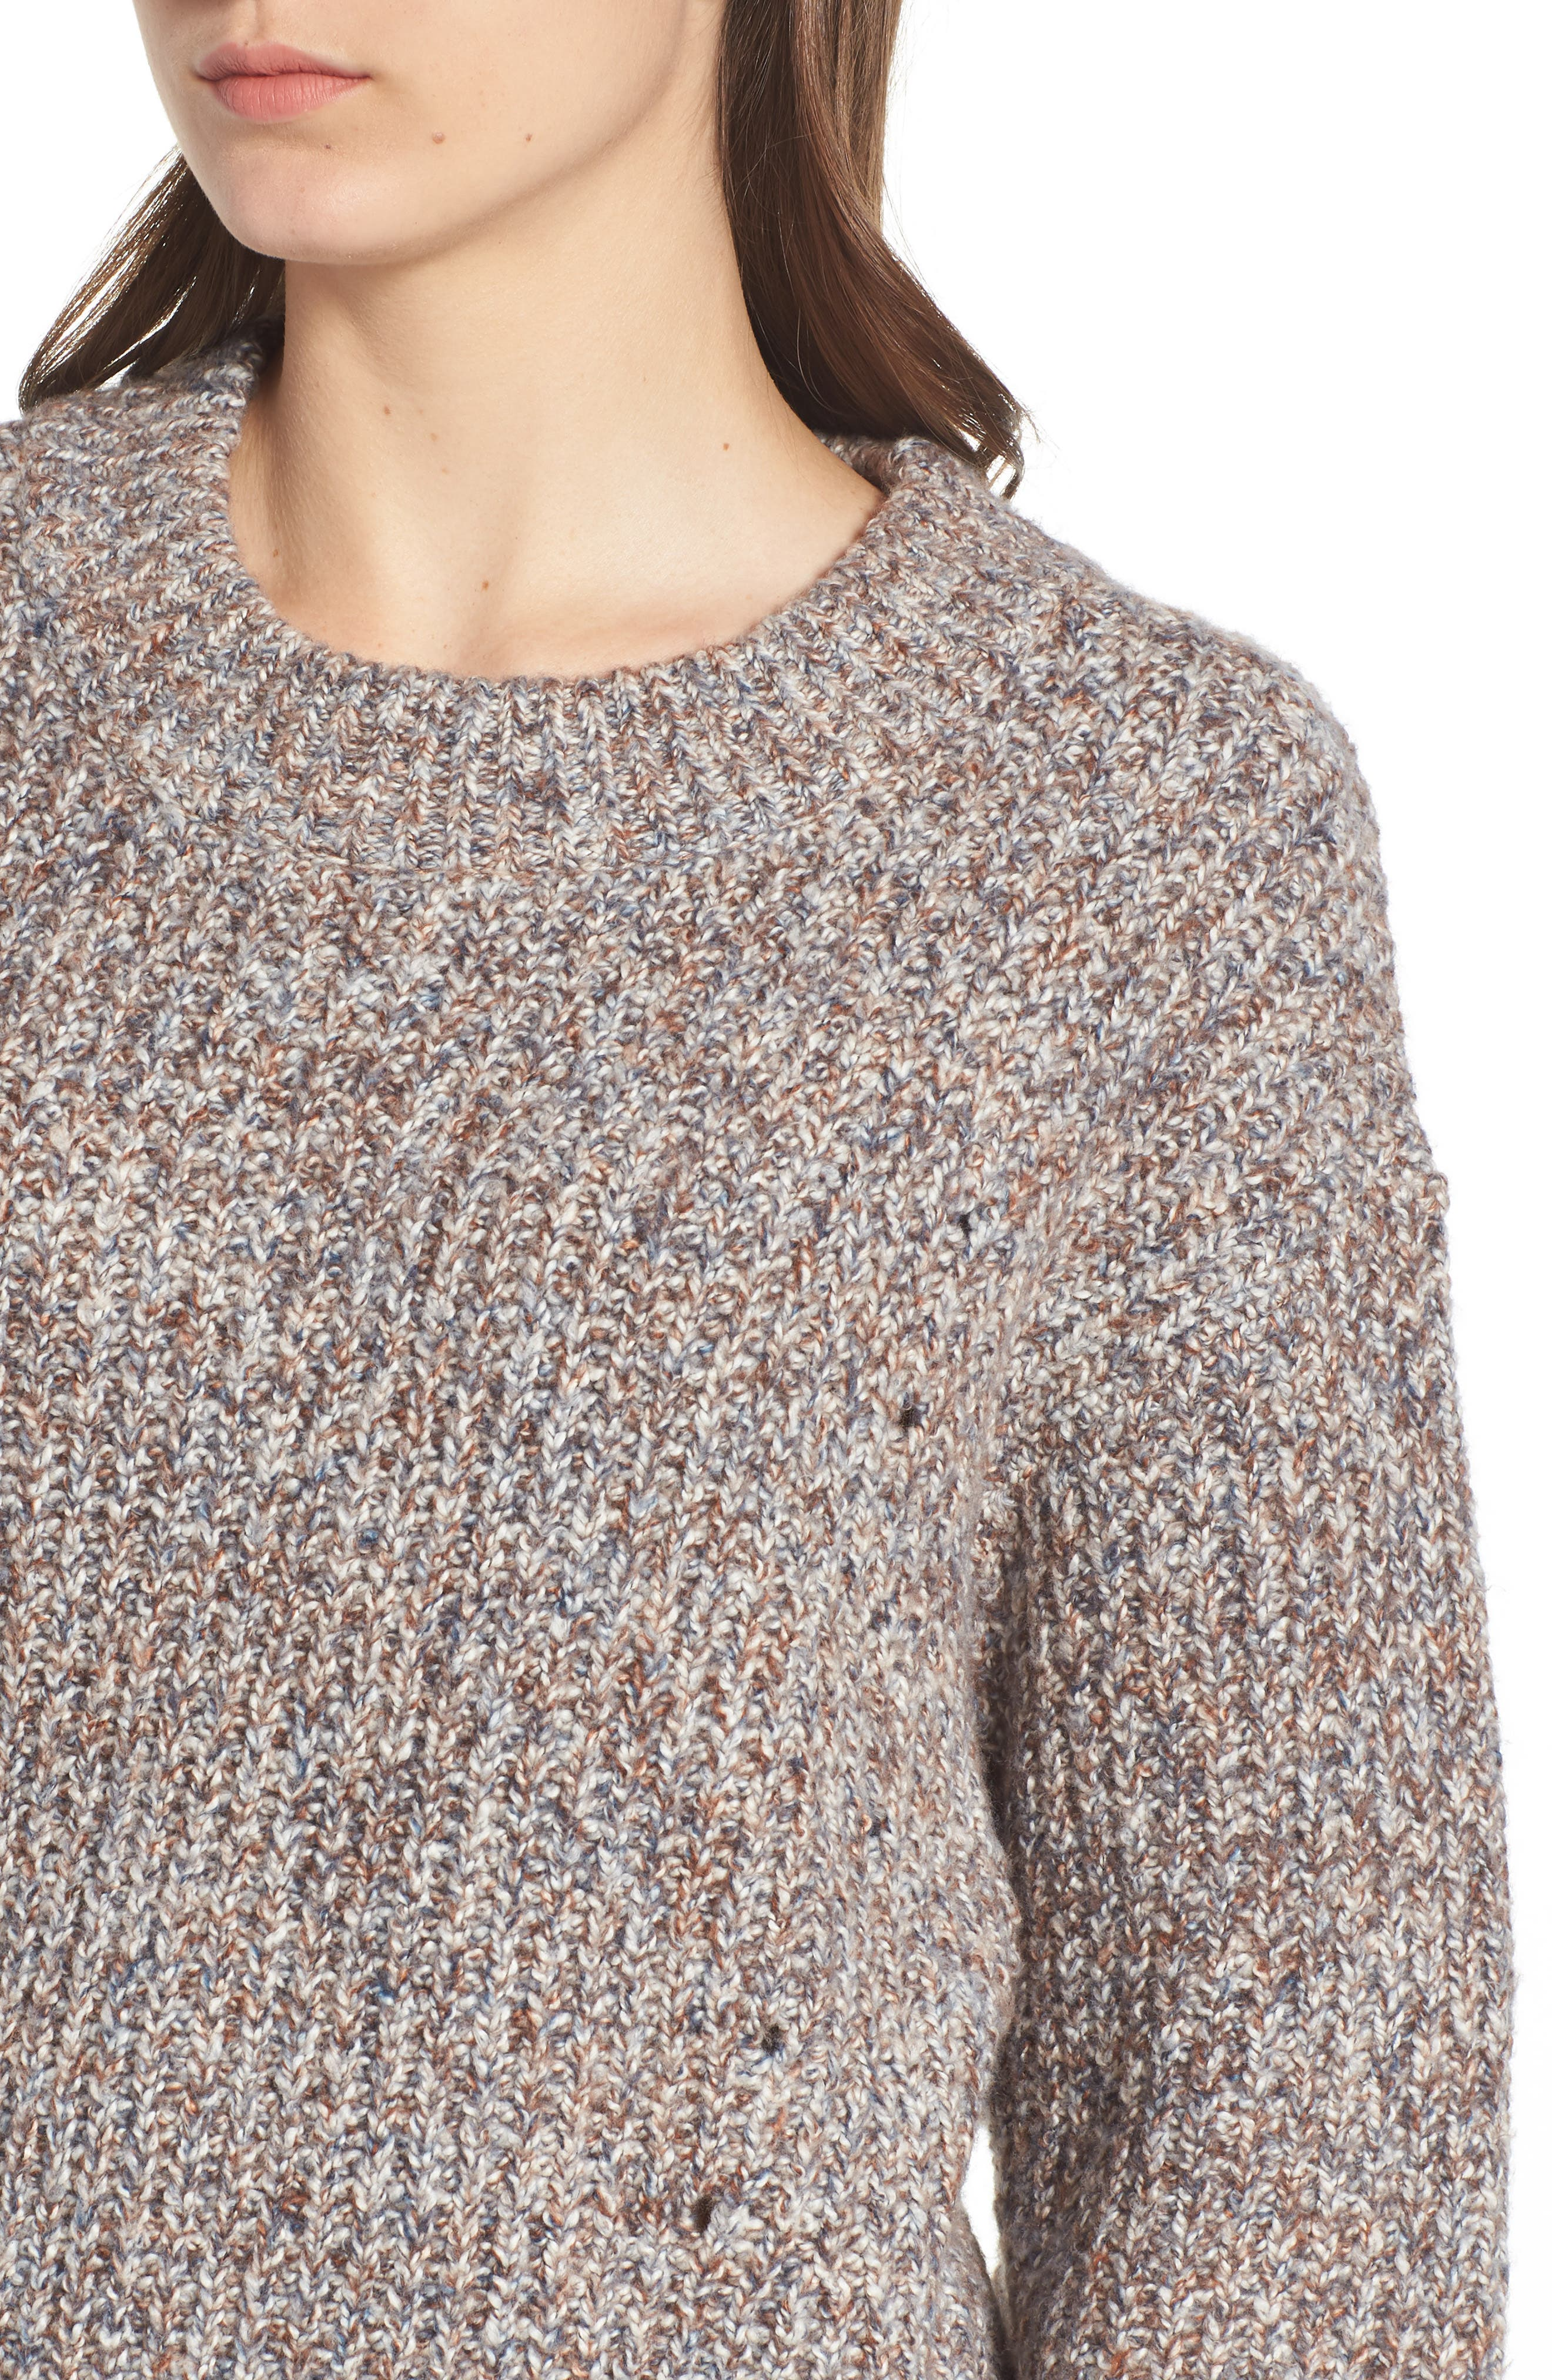 Heritage Stitch Sweater,                             Alternate thumbnail 4, color,                             021